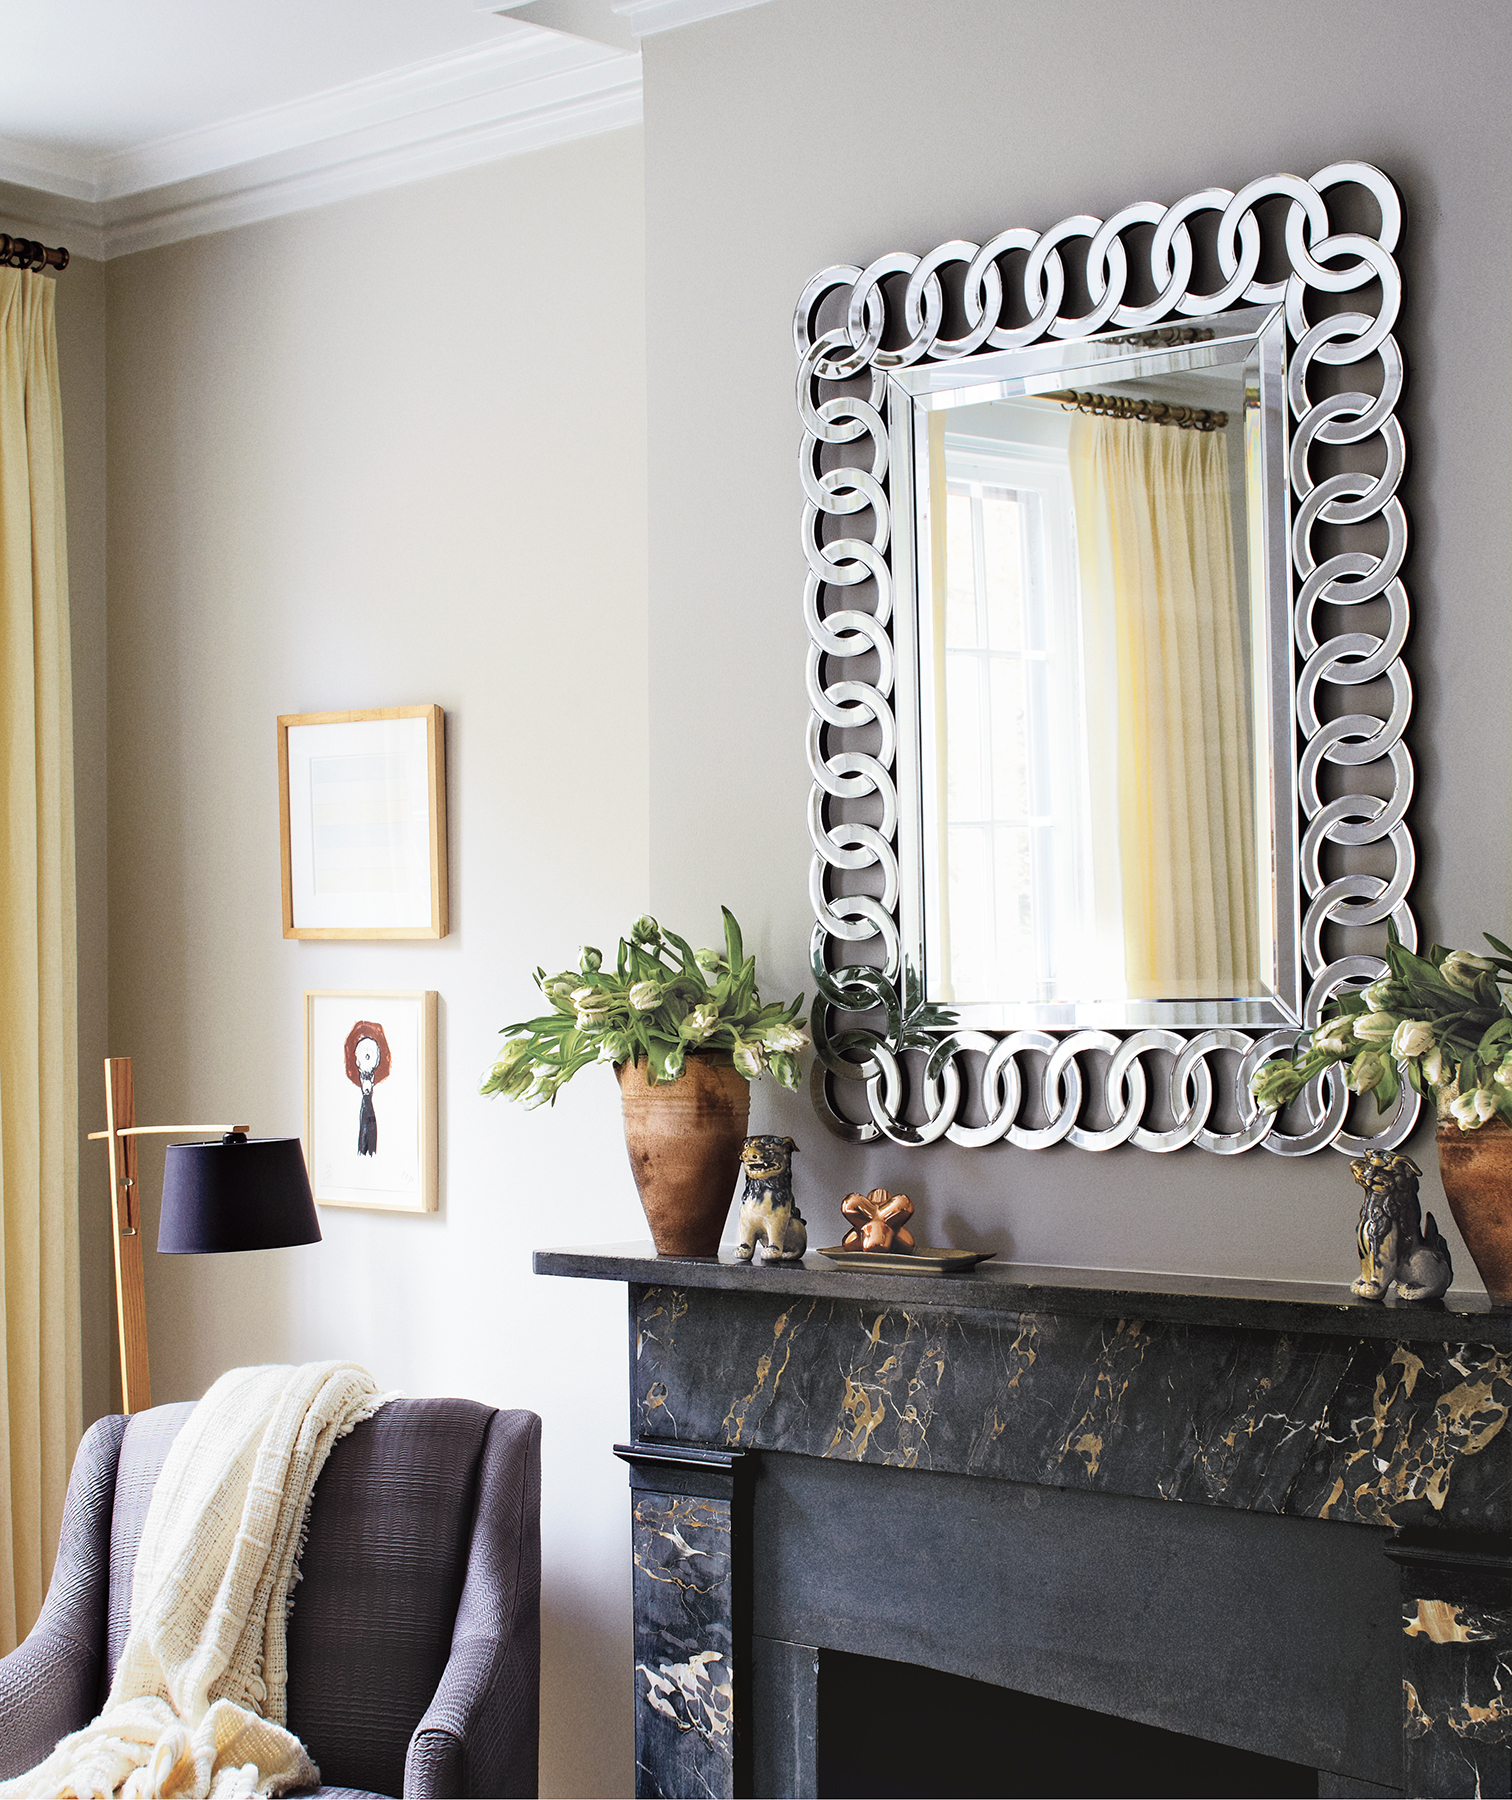 Bold mirror over fireplace